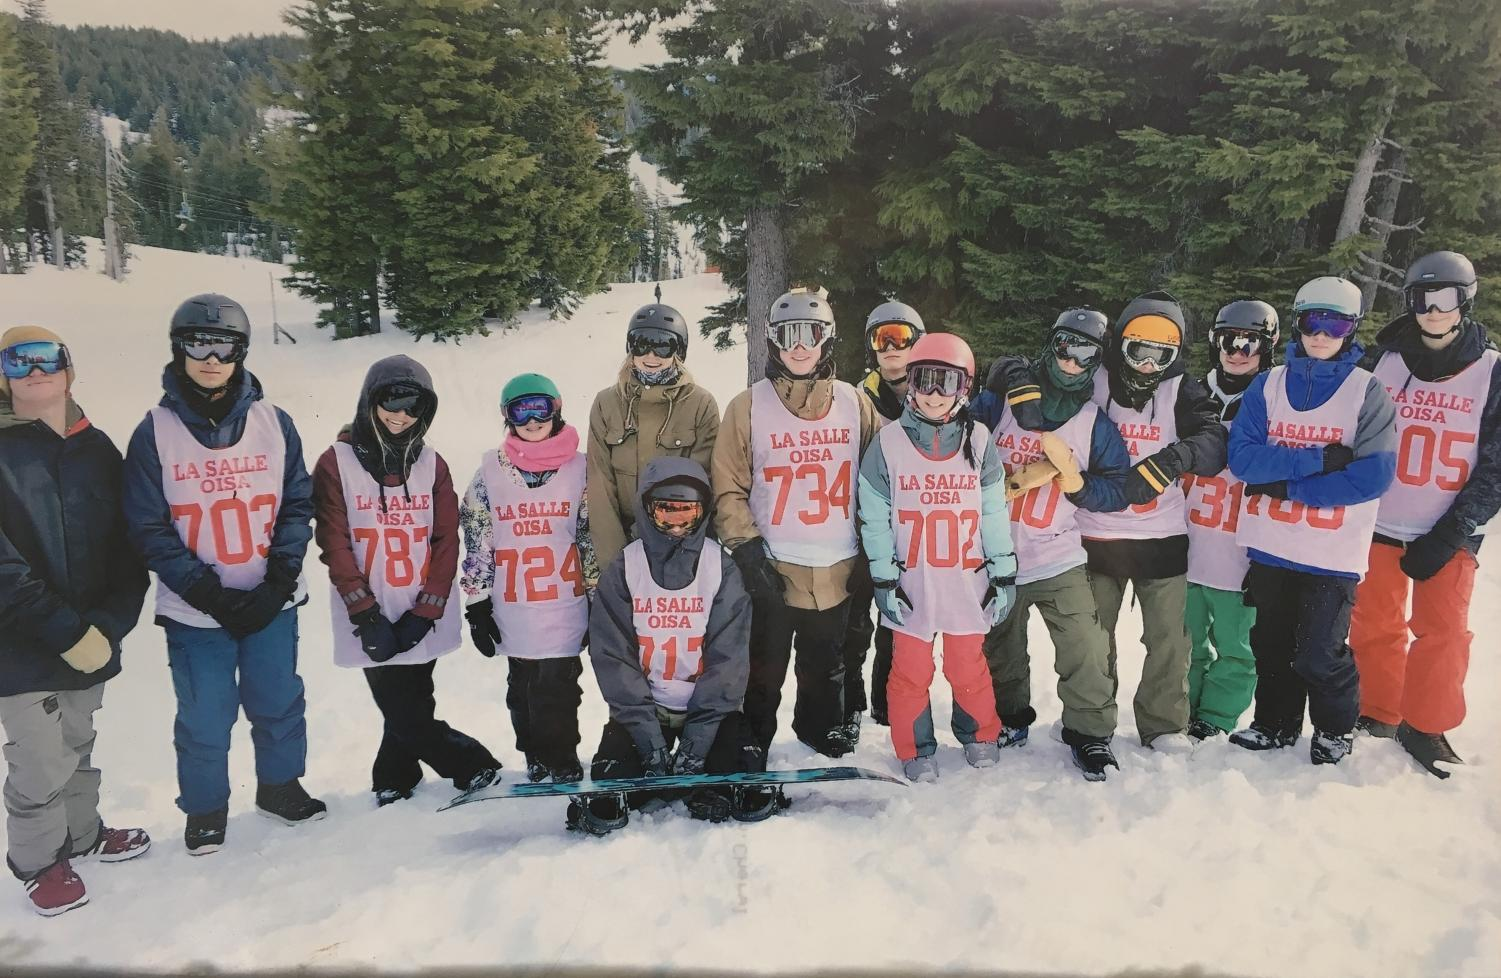 The snowboard team from 2017